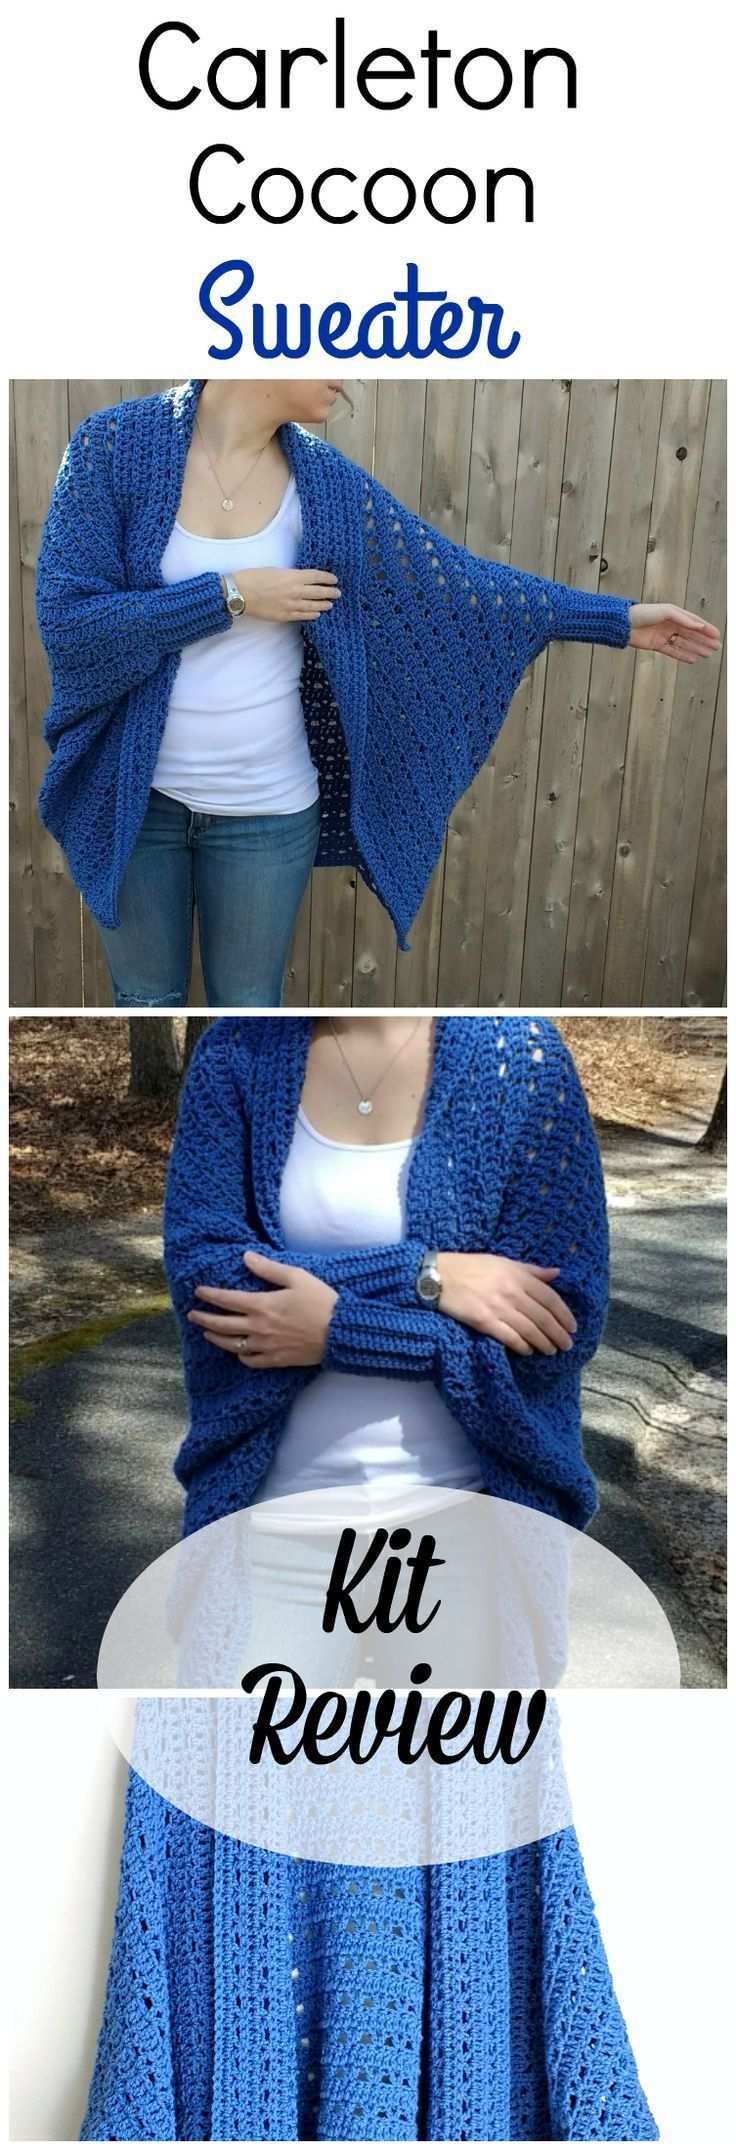 ffb2b3a5fc67e6 Carleton Cocoon Sweater Kit from Craftsy - A Review by